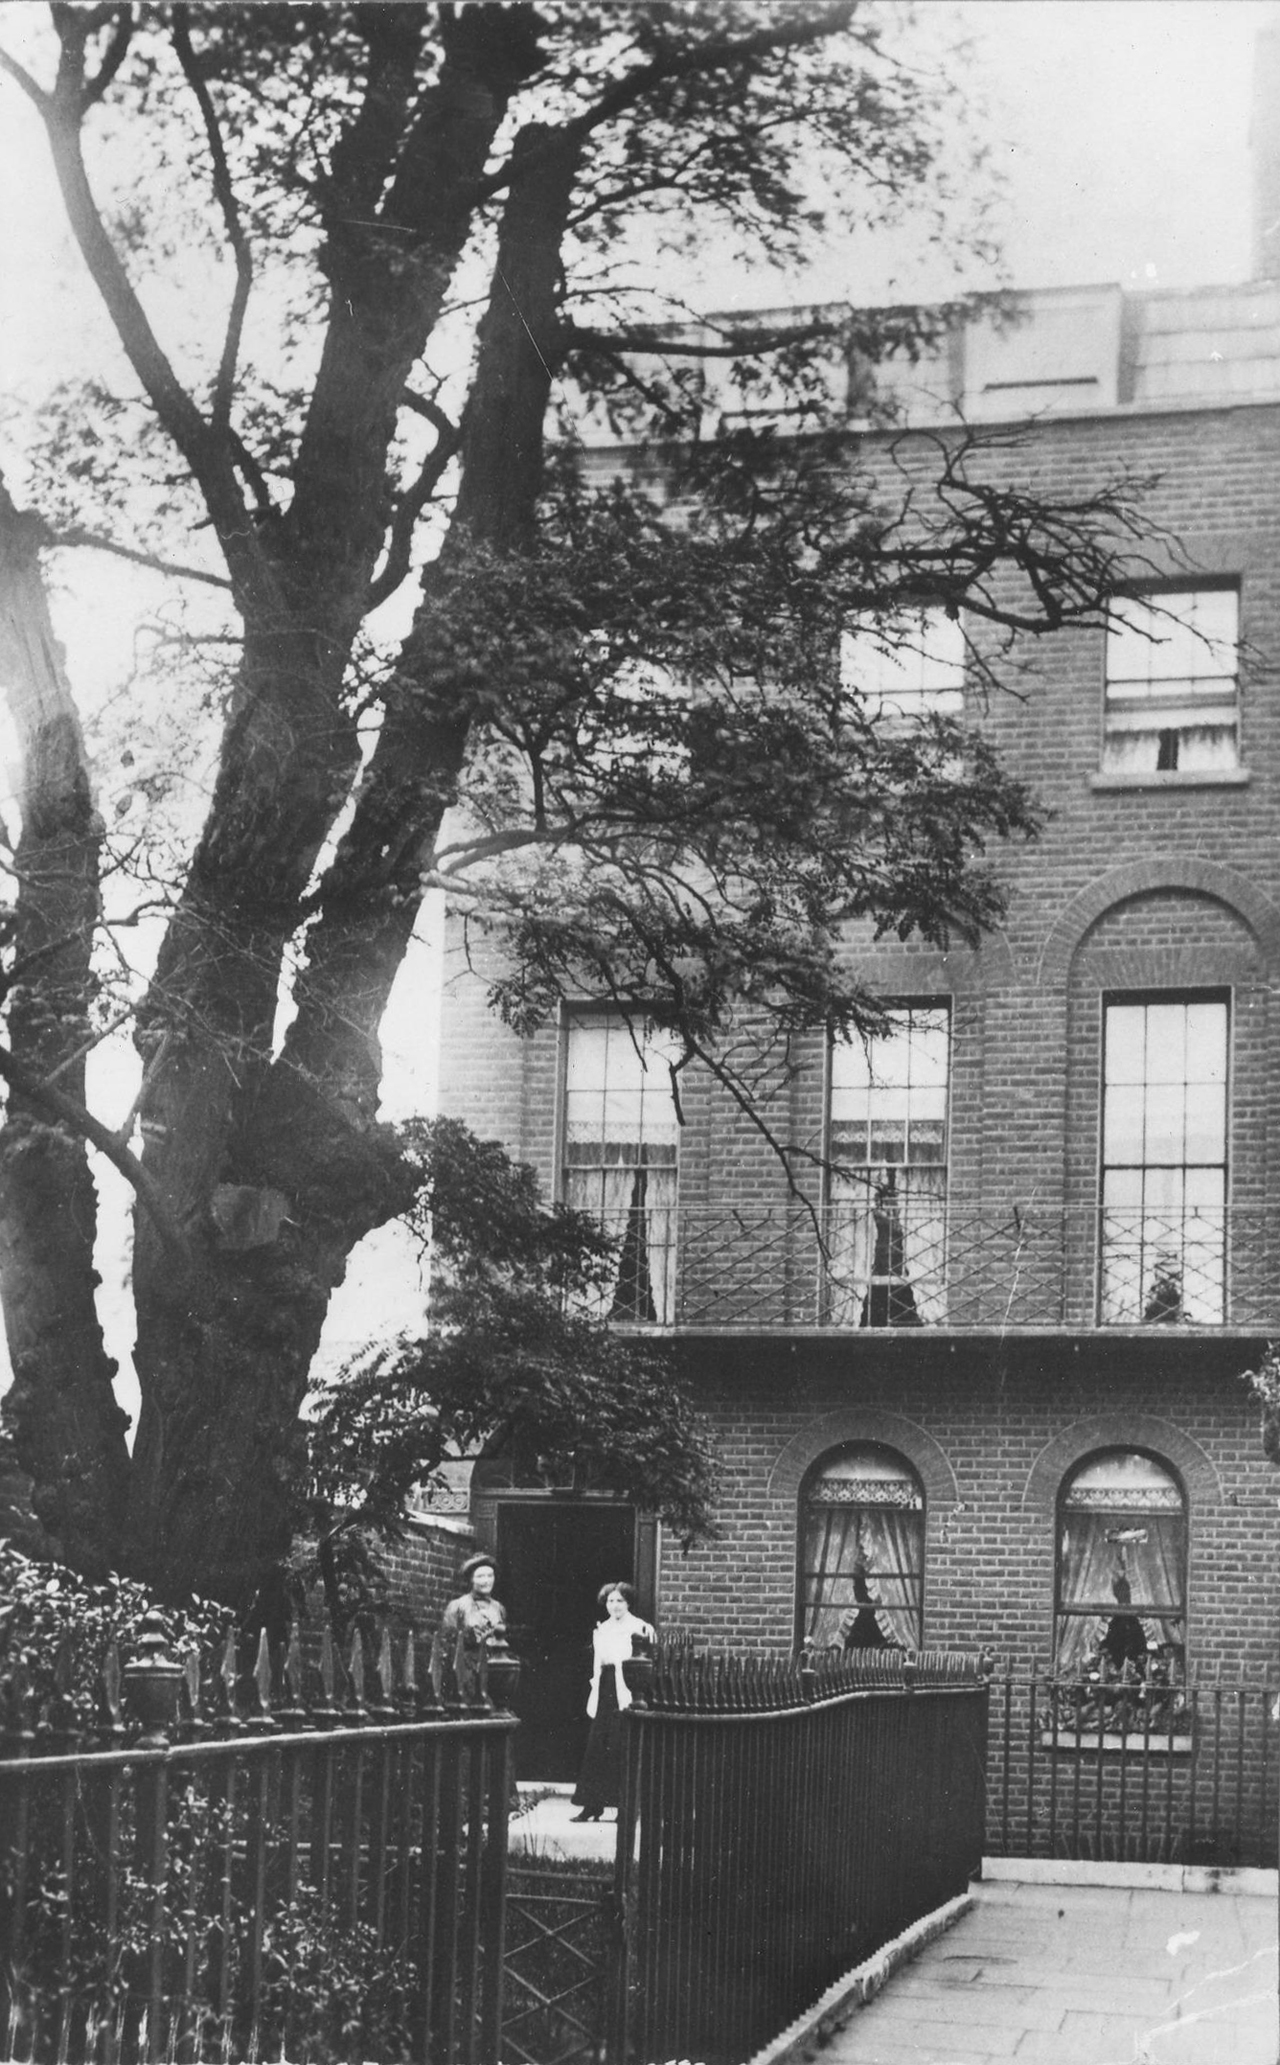 Historic photograph showing house before demolition in 1937.